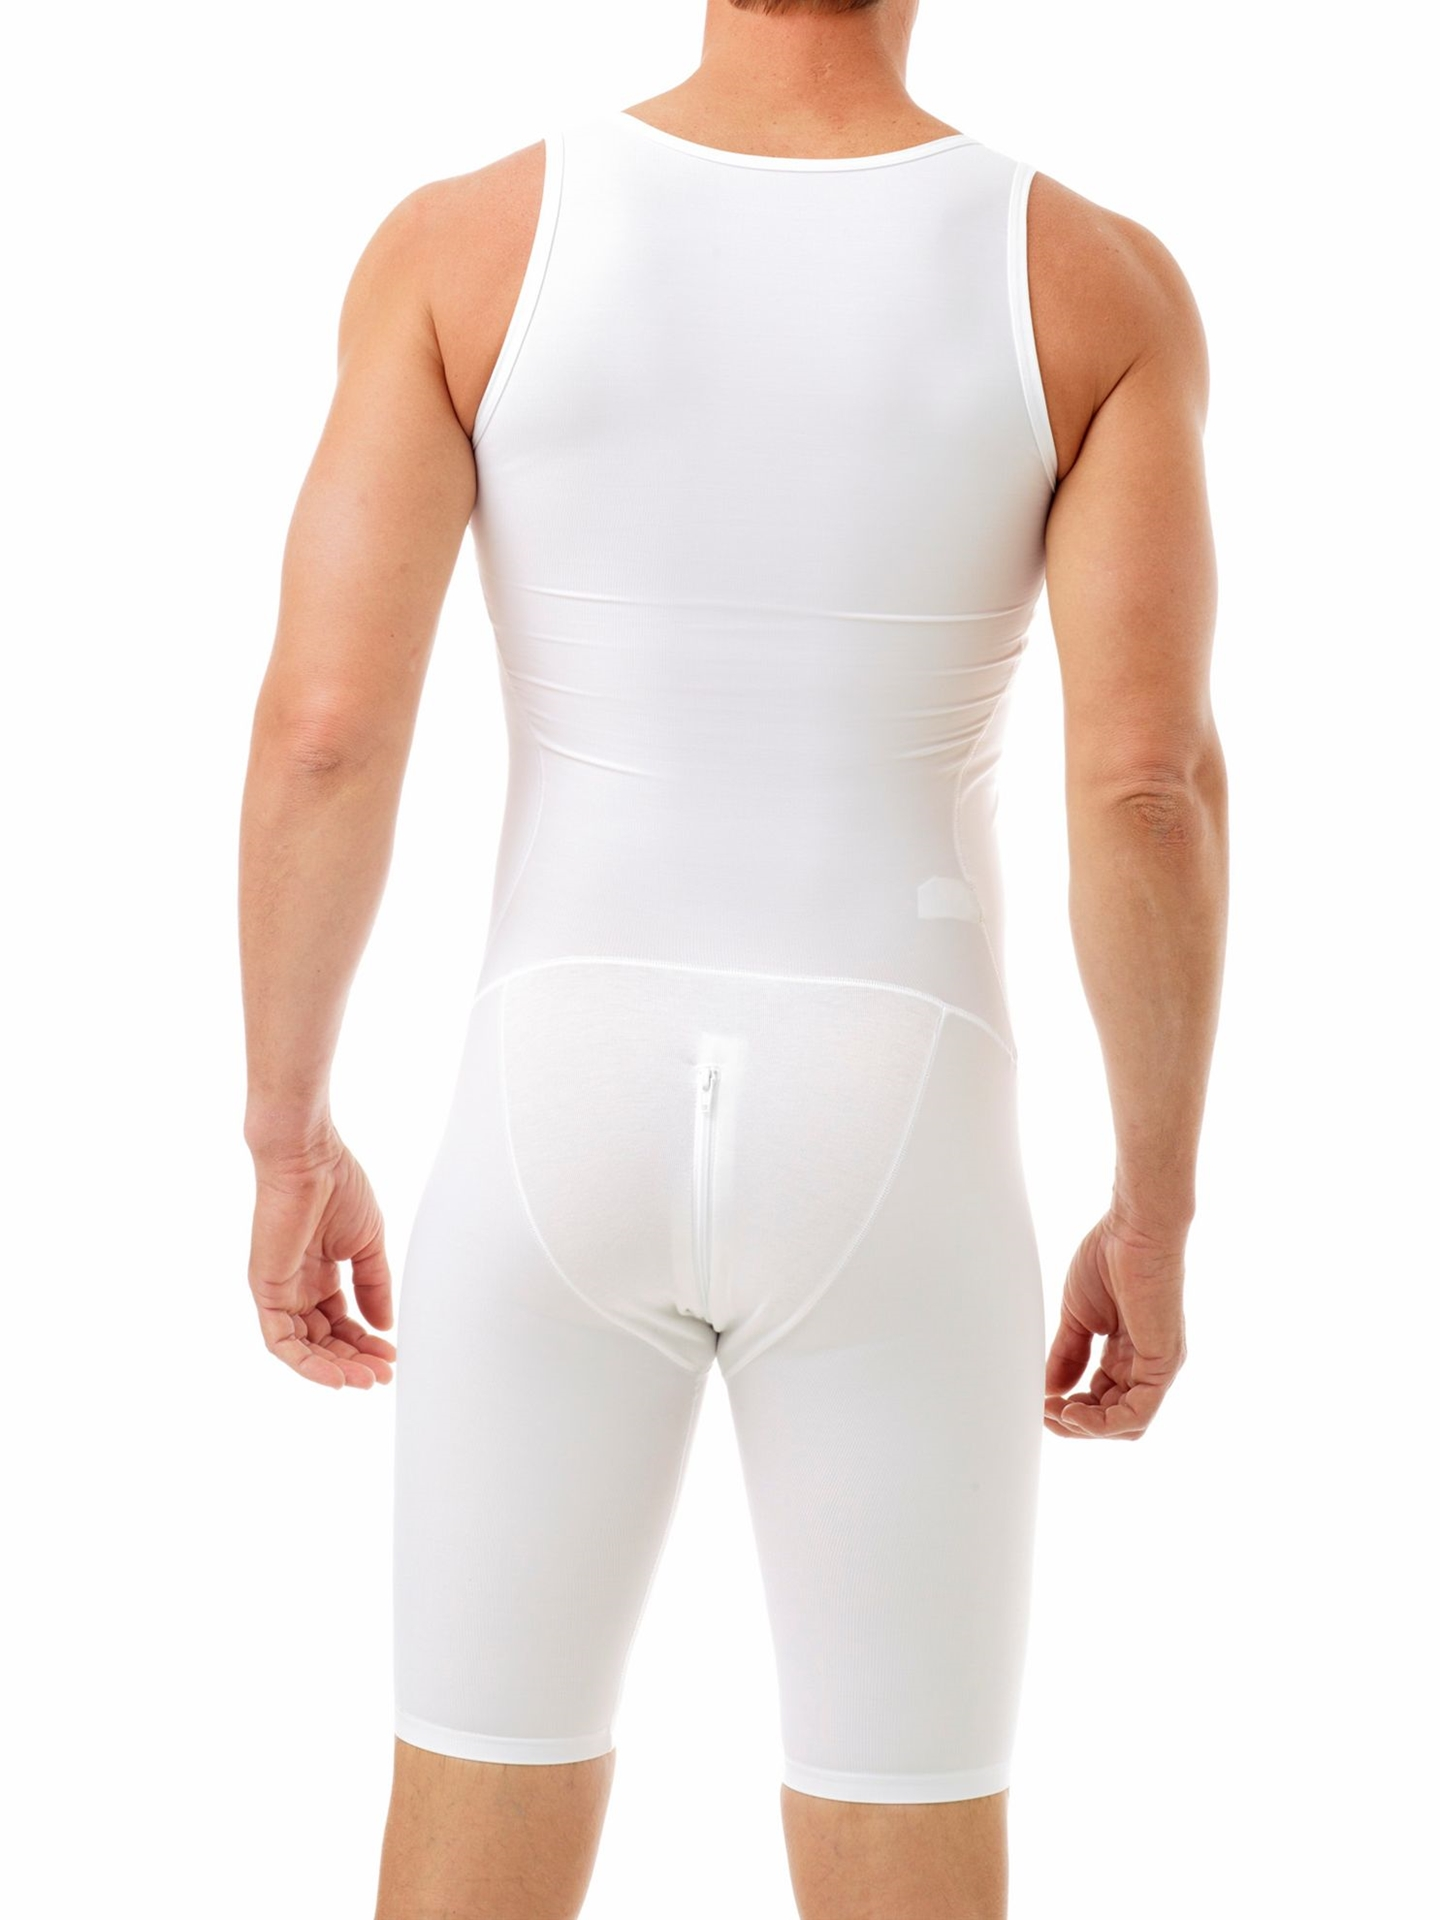 compression full body suit